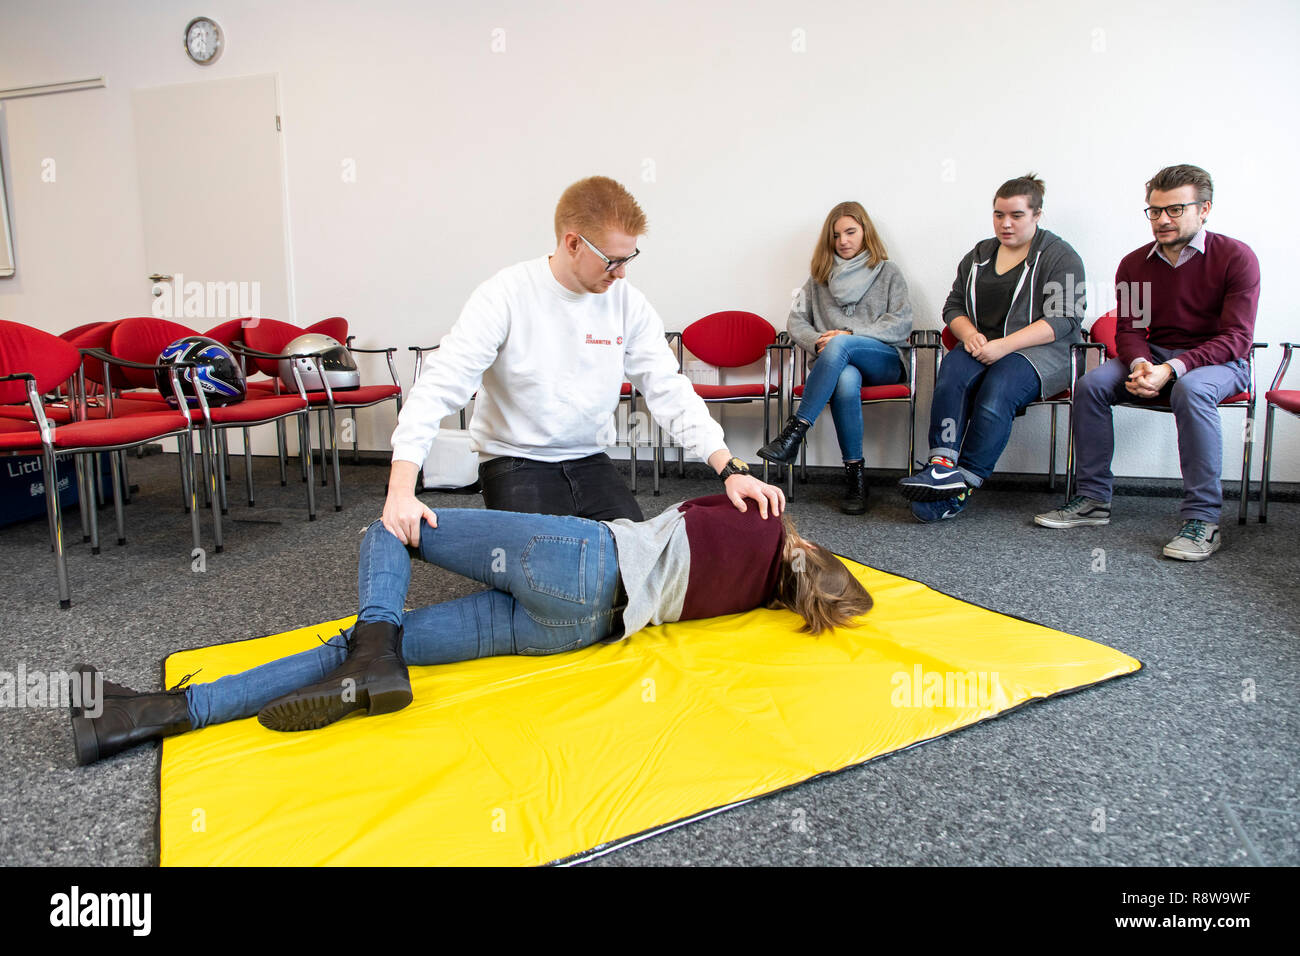 First Aid Course, First Aid Training, Emergencies, Practice Training, Stable Lateral Position, - Stock Image